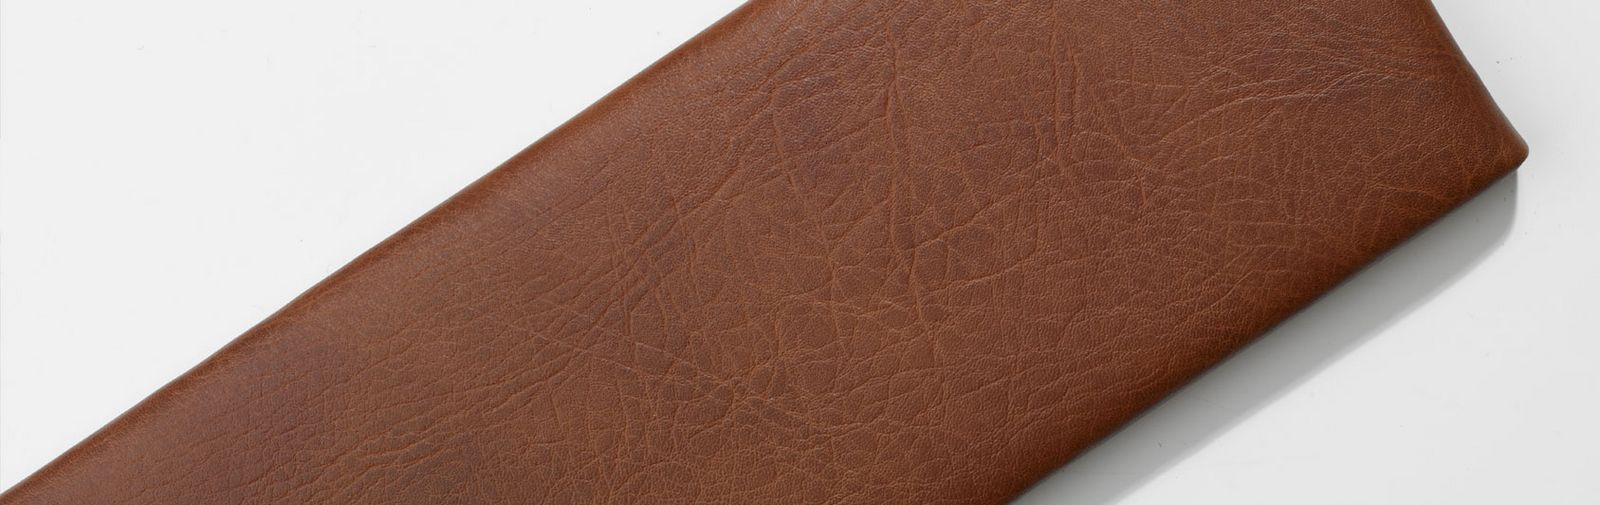 sample hassock faux leather color brown